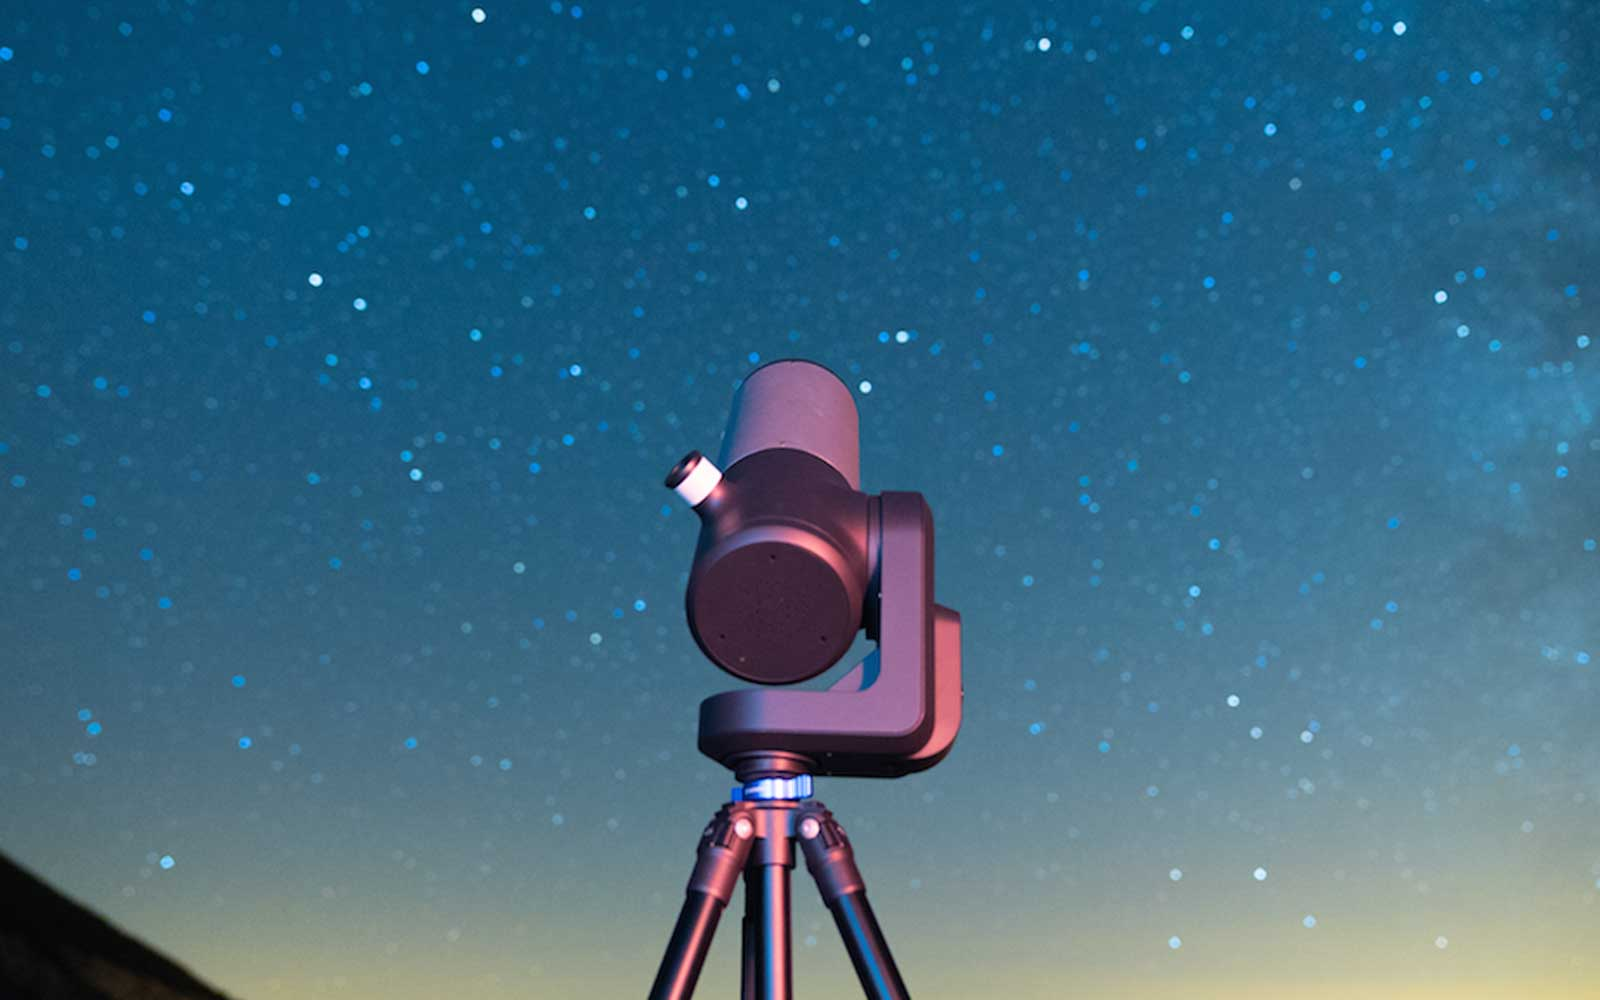 This Revolutionary New Telescope Will Let You See Distant Galaxies From Your Own Backyard